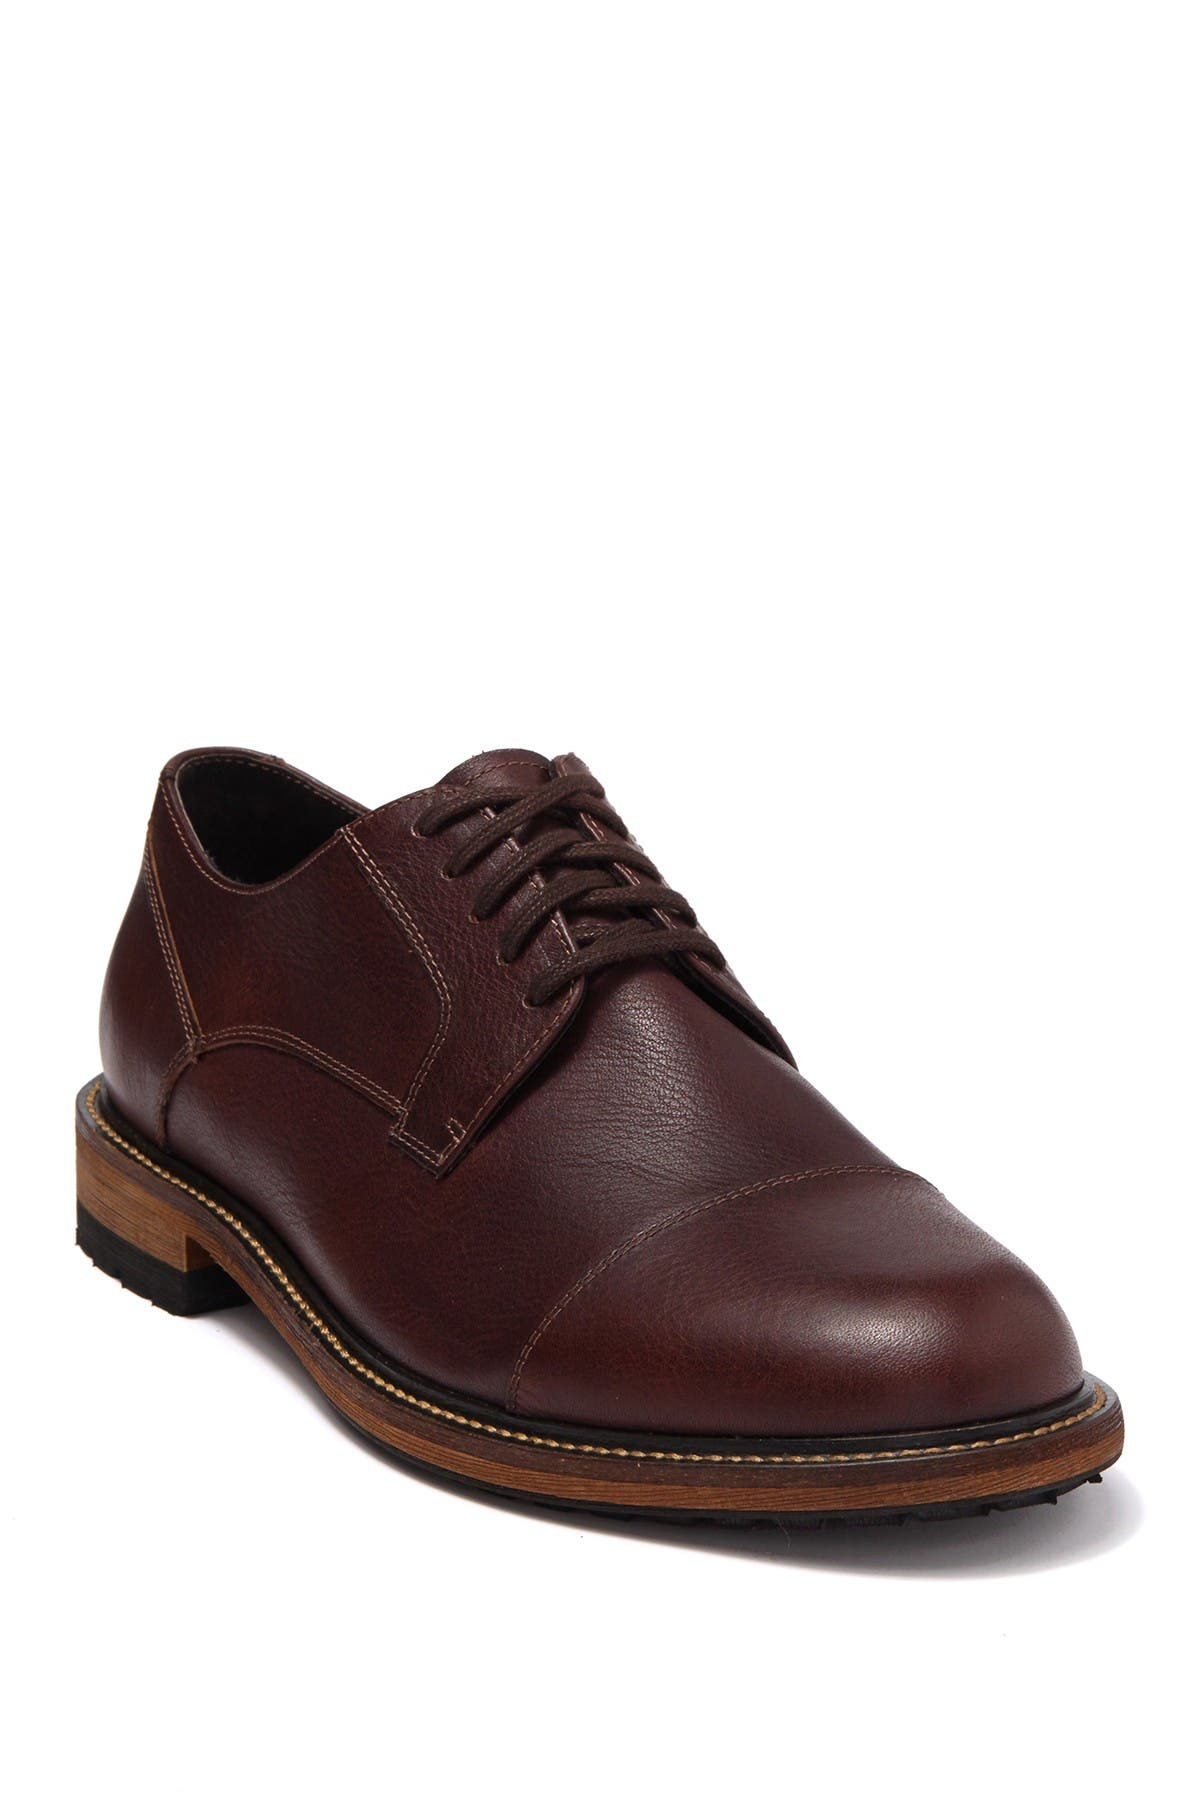 Image of Warfield & Grand Akers Cap Toe Leather Derby